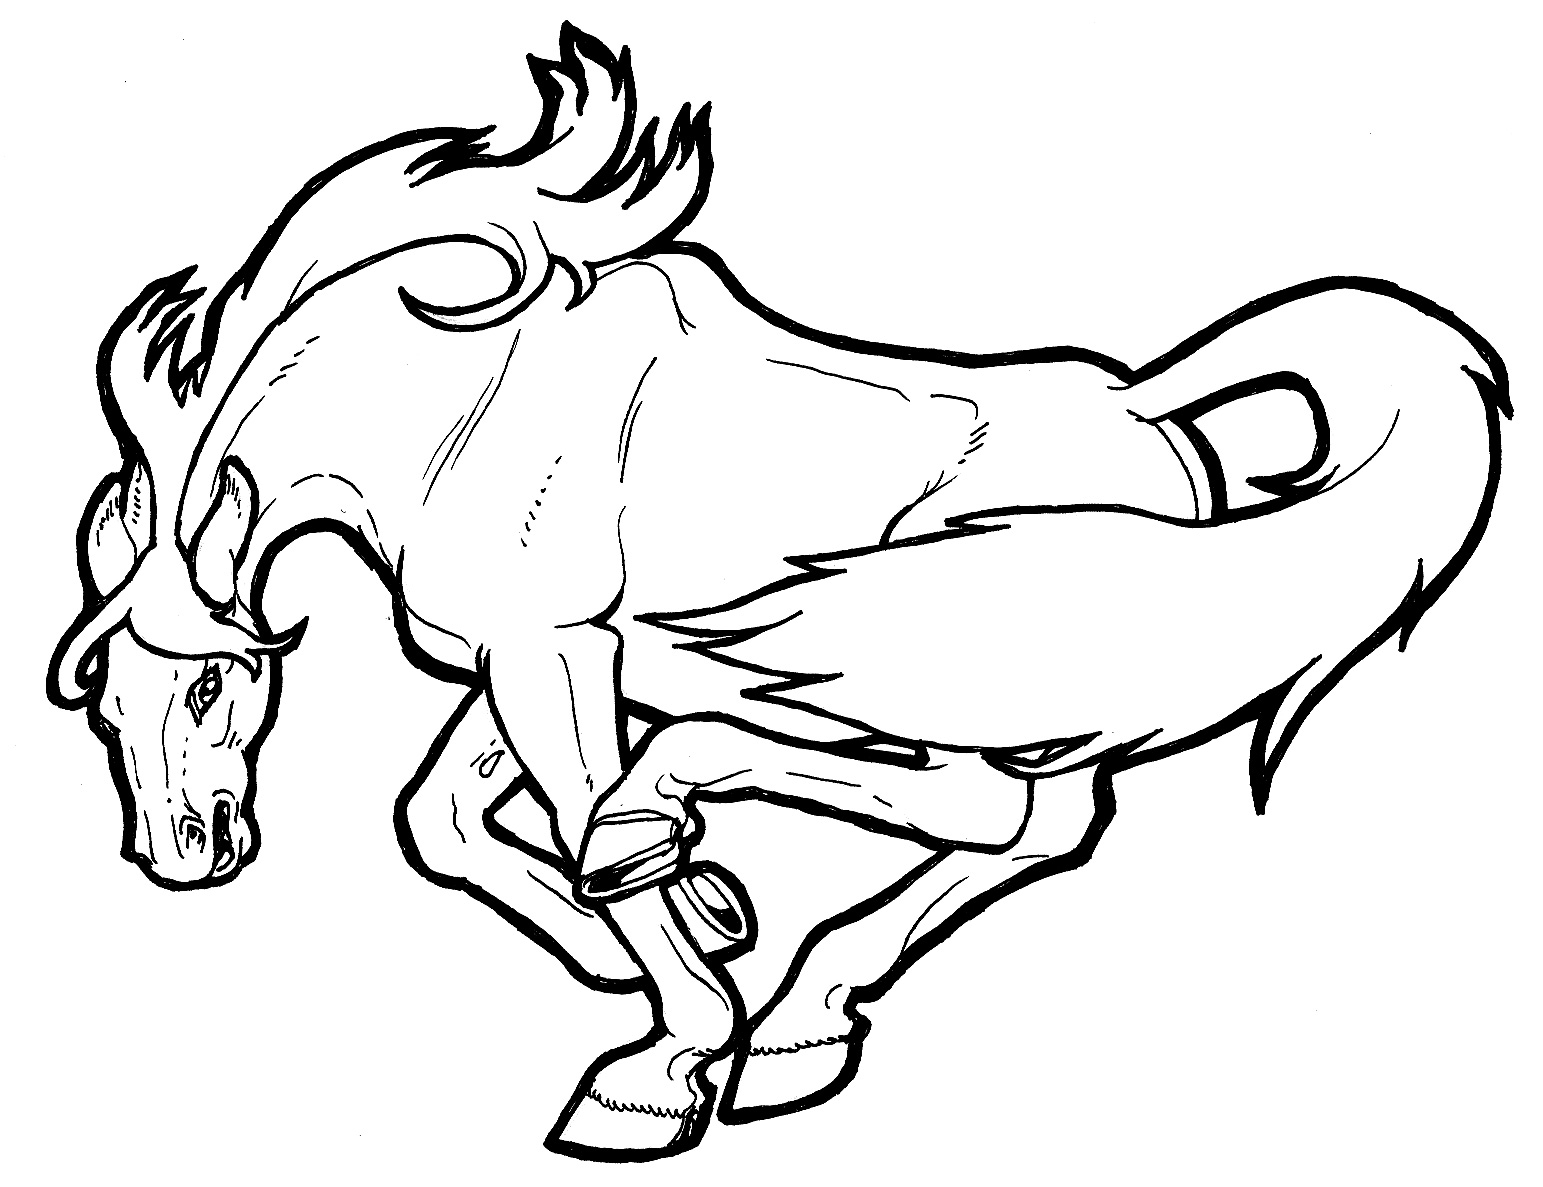 horse color sheet horse coloring pages for kids coloring pages for kids sheet horse color